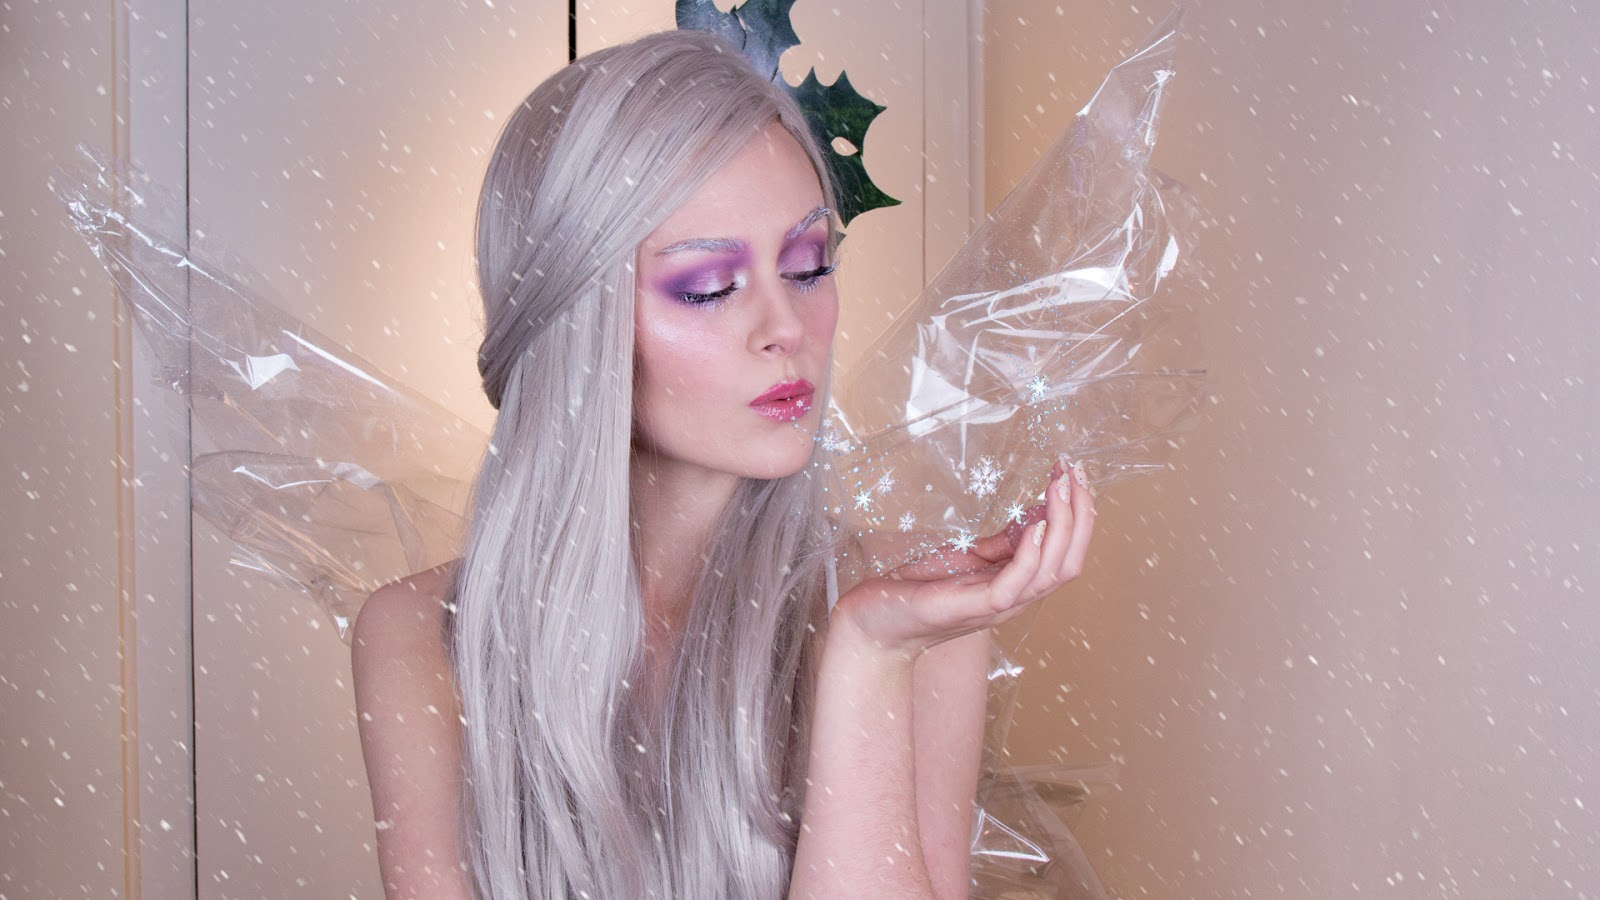 Emma pickles winter forest fairy makeup tutorial winter forest fairy makeup tutorial baditri Images